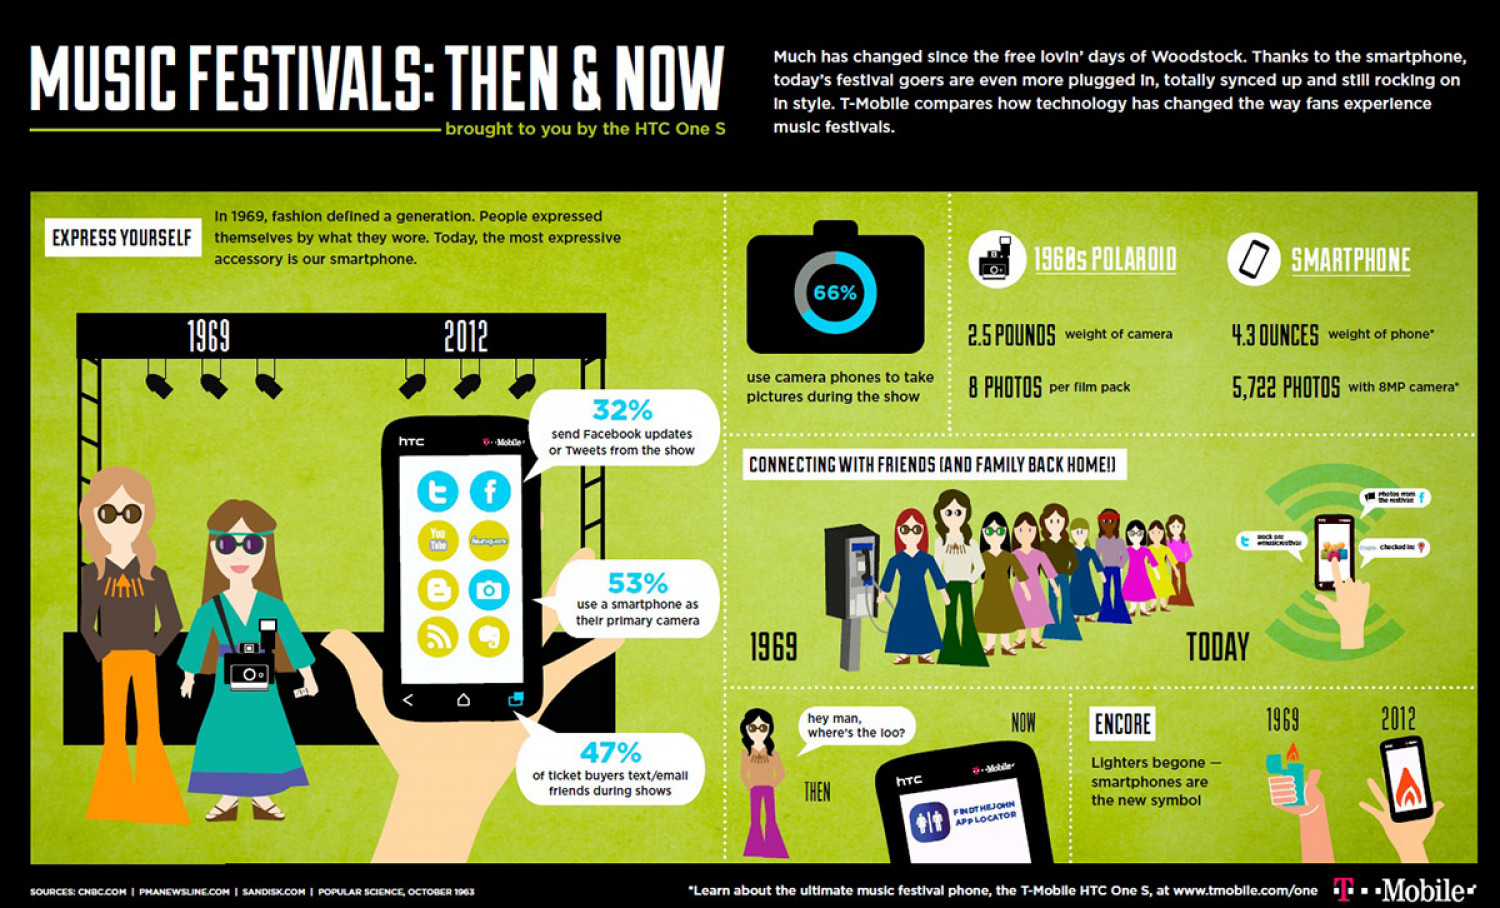 Music Festival Then & Now Infographic